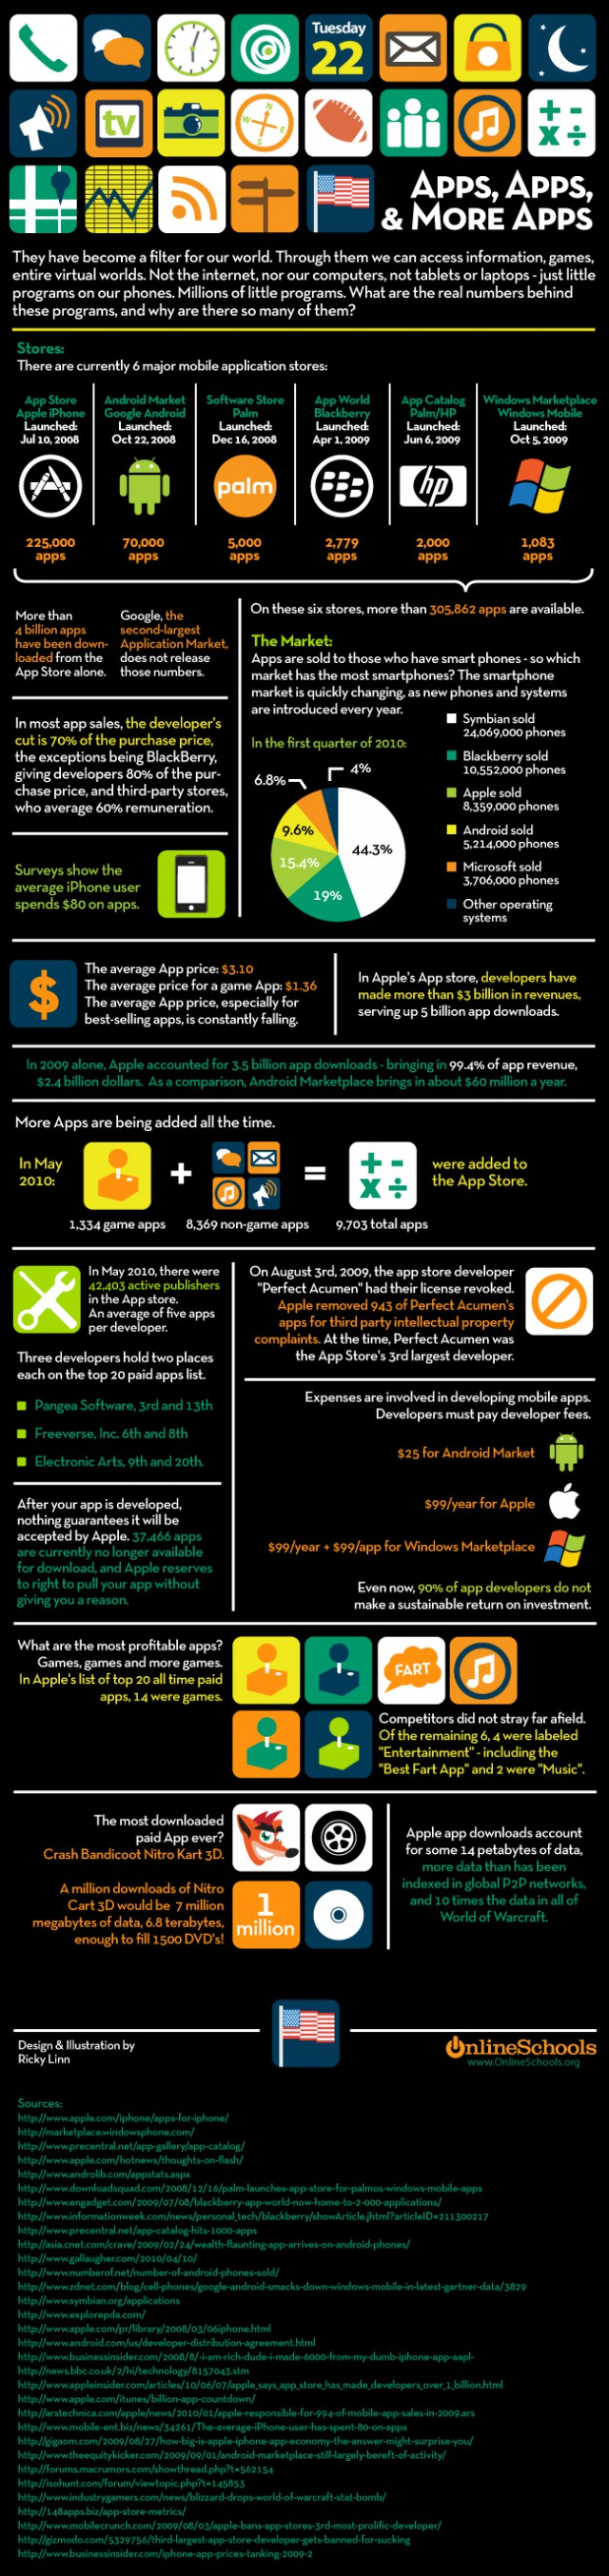 Major-App-Stores-Compared-Infographic-1-640x2708 Infographic Compares Major Smartphone App Stores